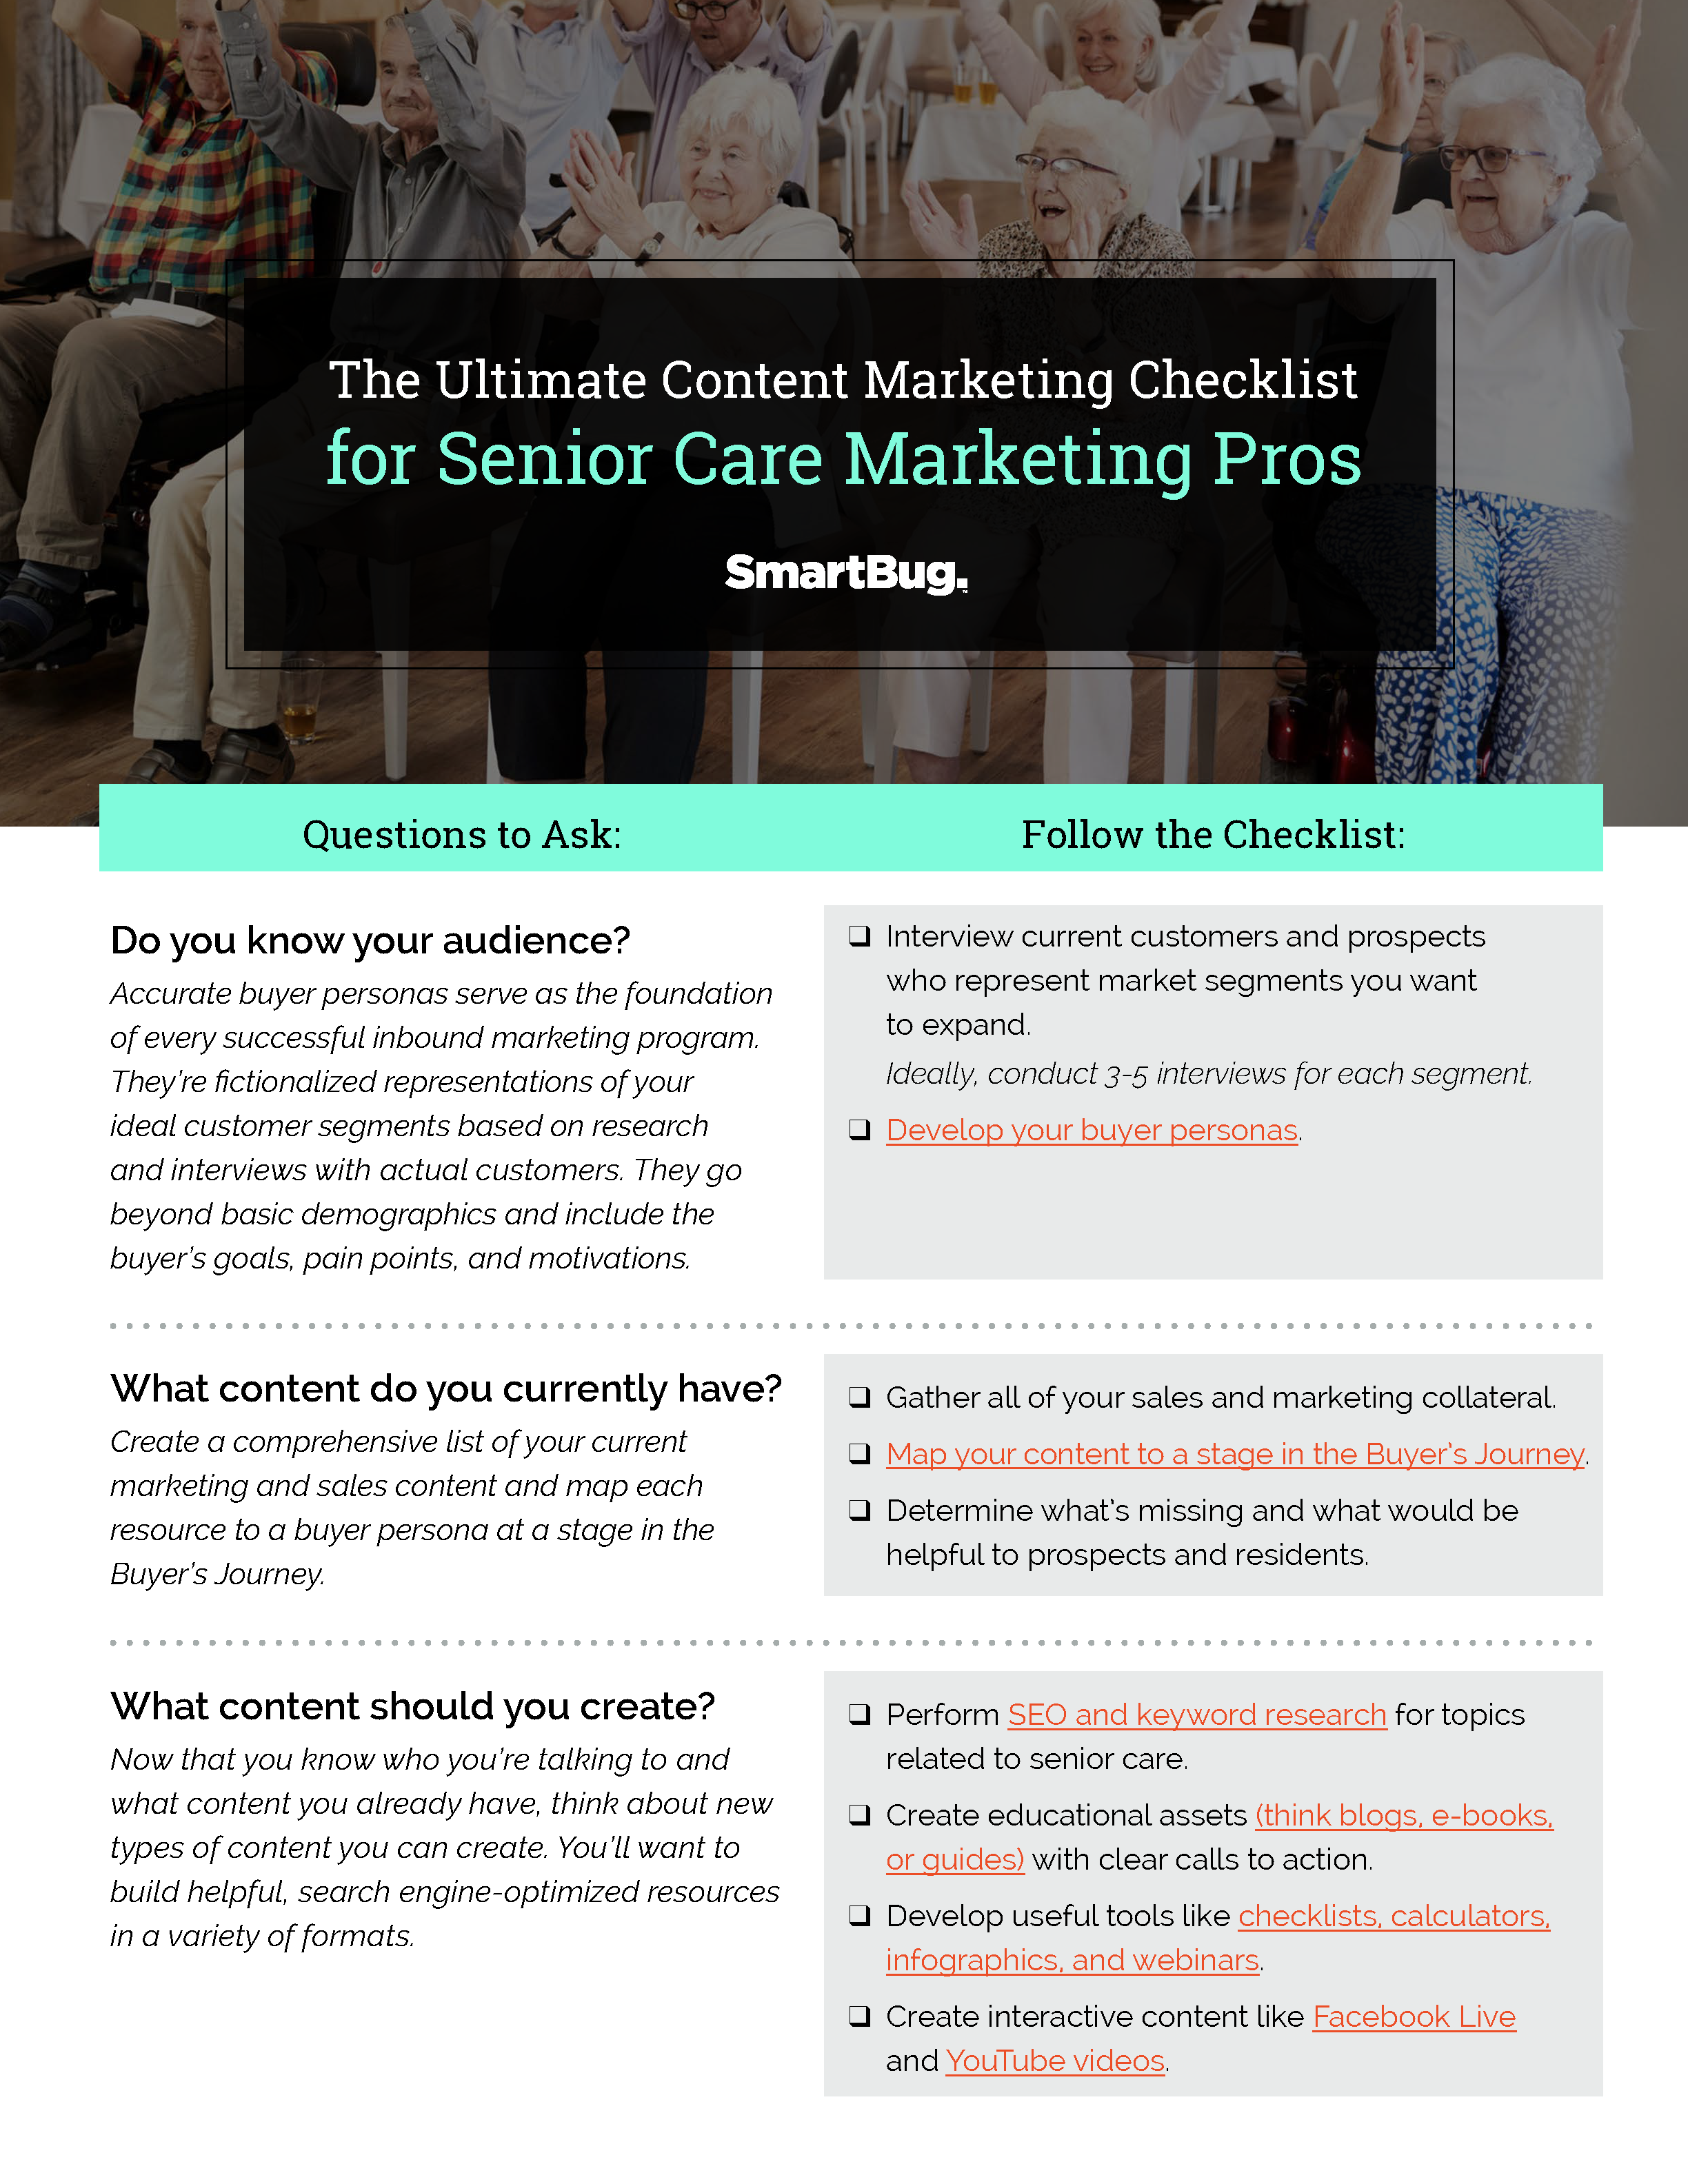 The Ultimate Content Marketing Checklist for Senior Care Marketing Pros copy_Page_1